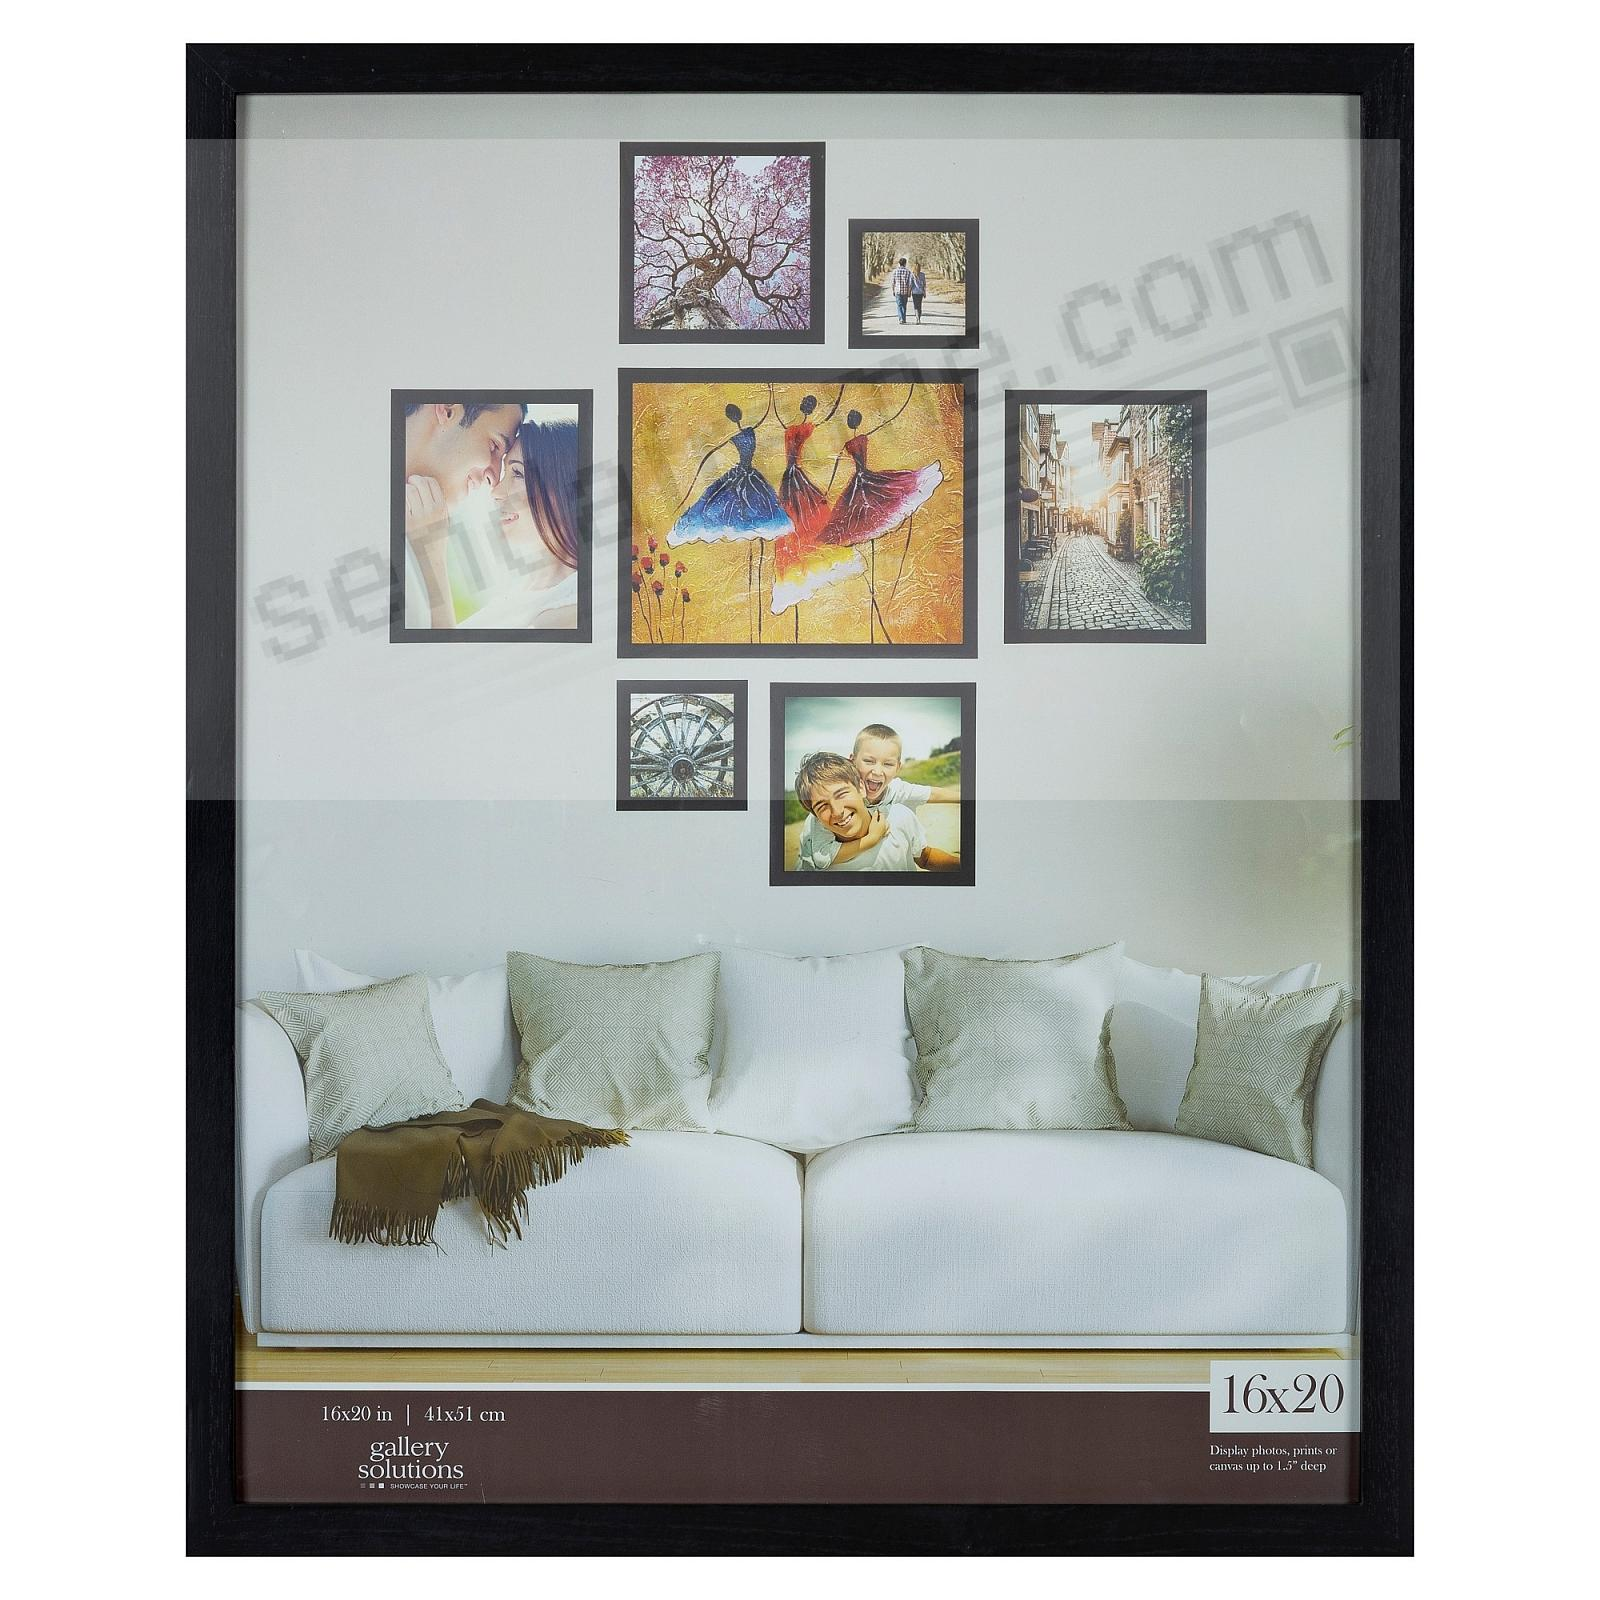 BLACK GALLERY 16x20 frame by Gallery Solutions®